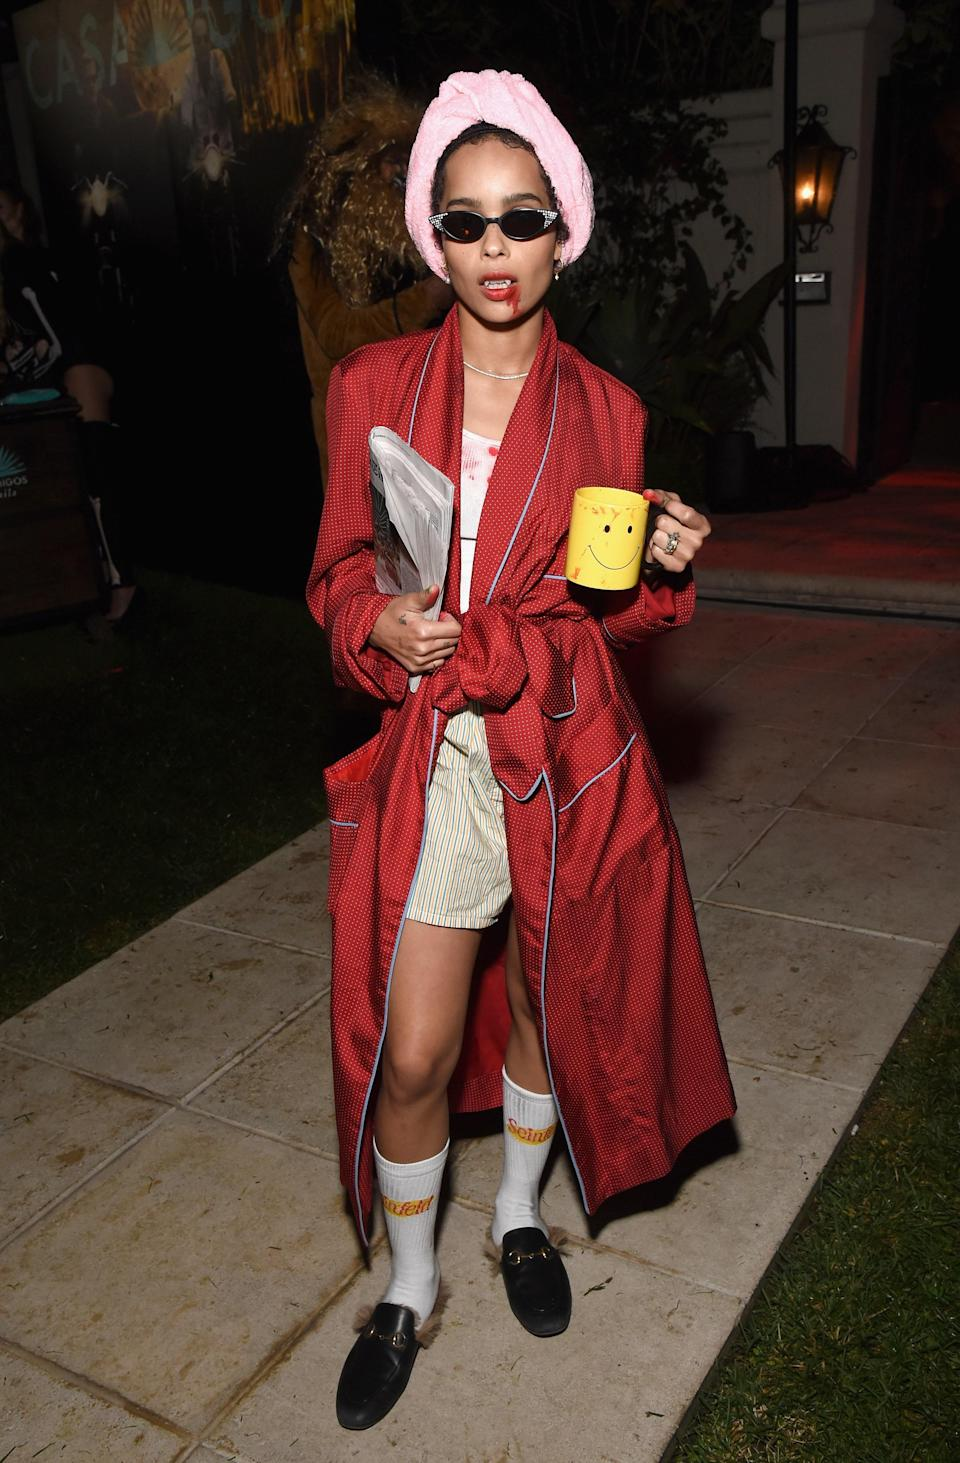 Even a vamp needs her coffee.